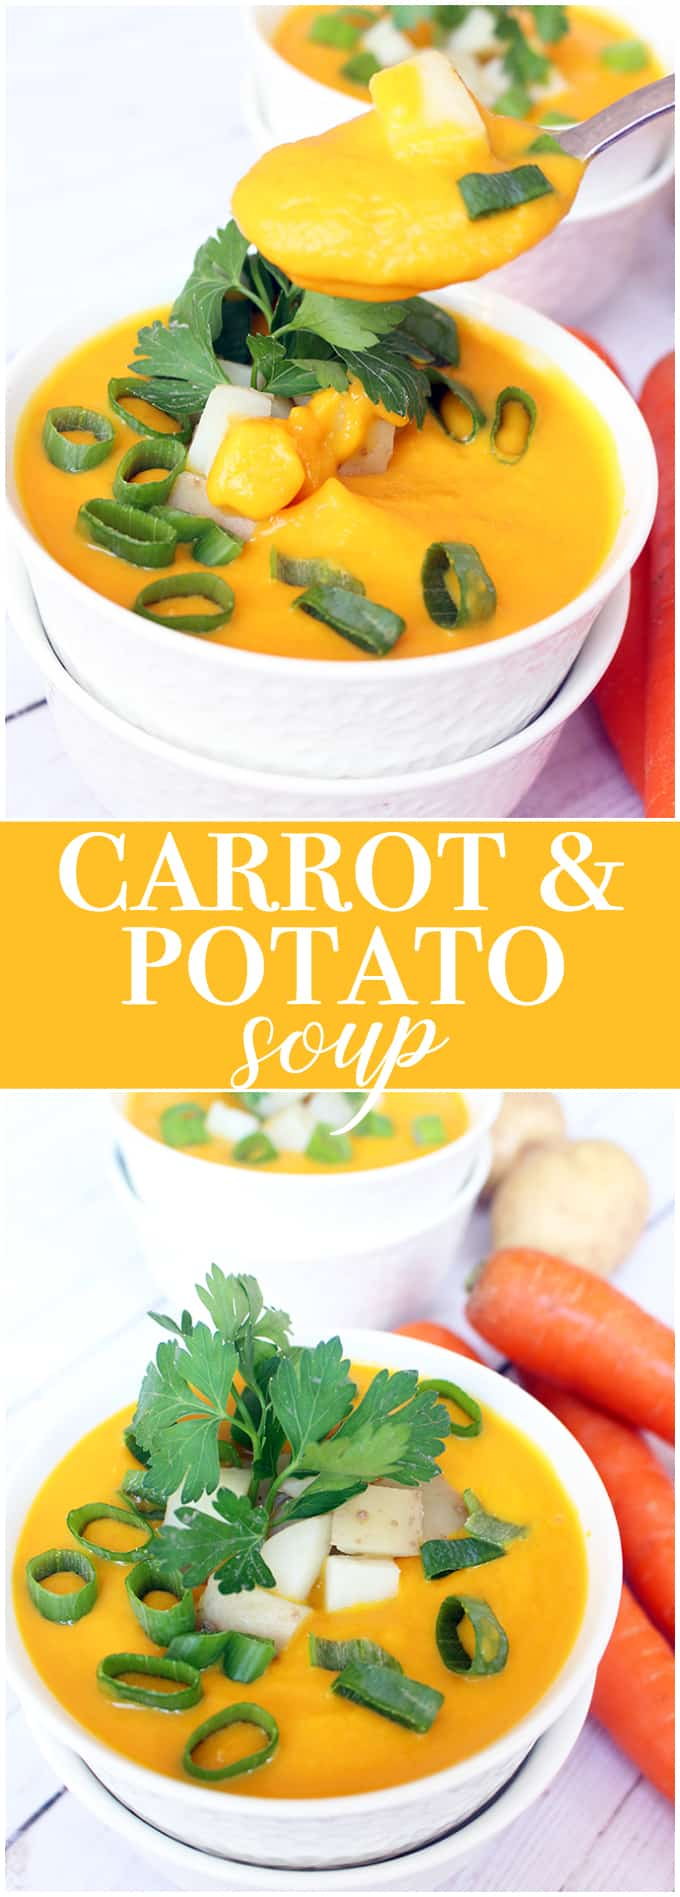 Carrot and Potato Soup - This super creamy vegetarian soup is filled with warm flavors of sweet carrots and yummy potatoes with ginger, parsley, and sour cream.